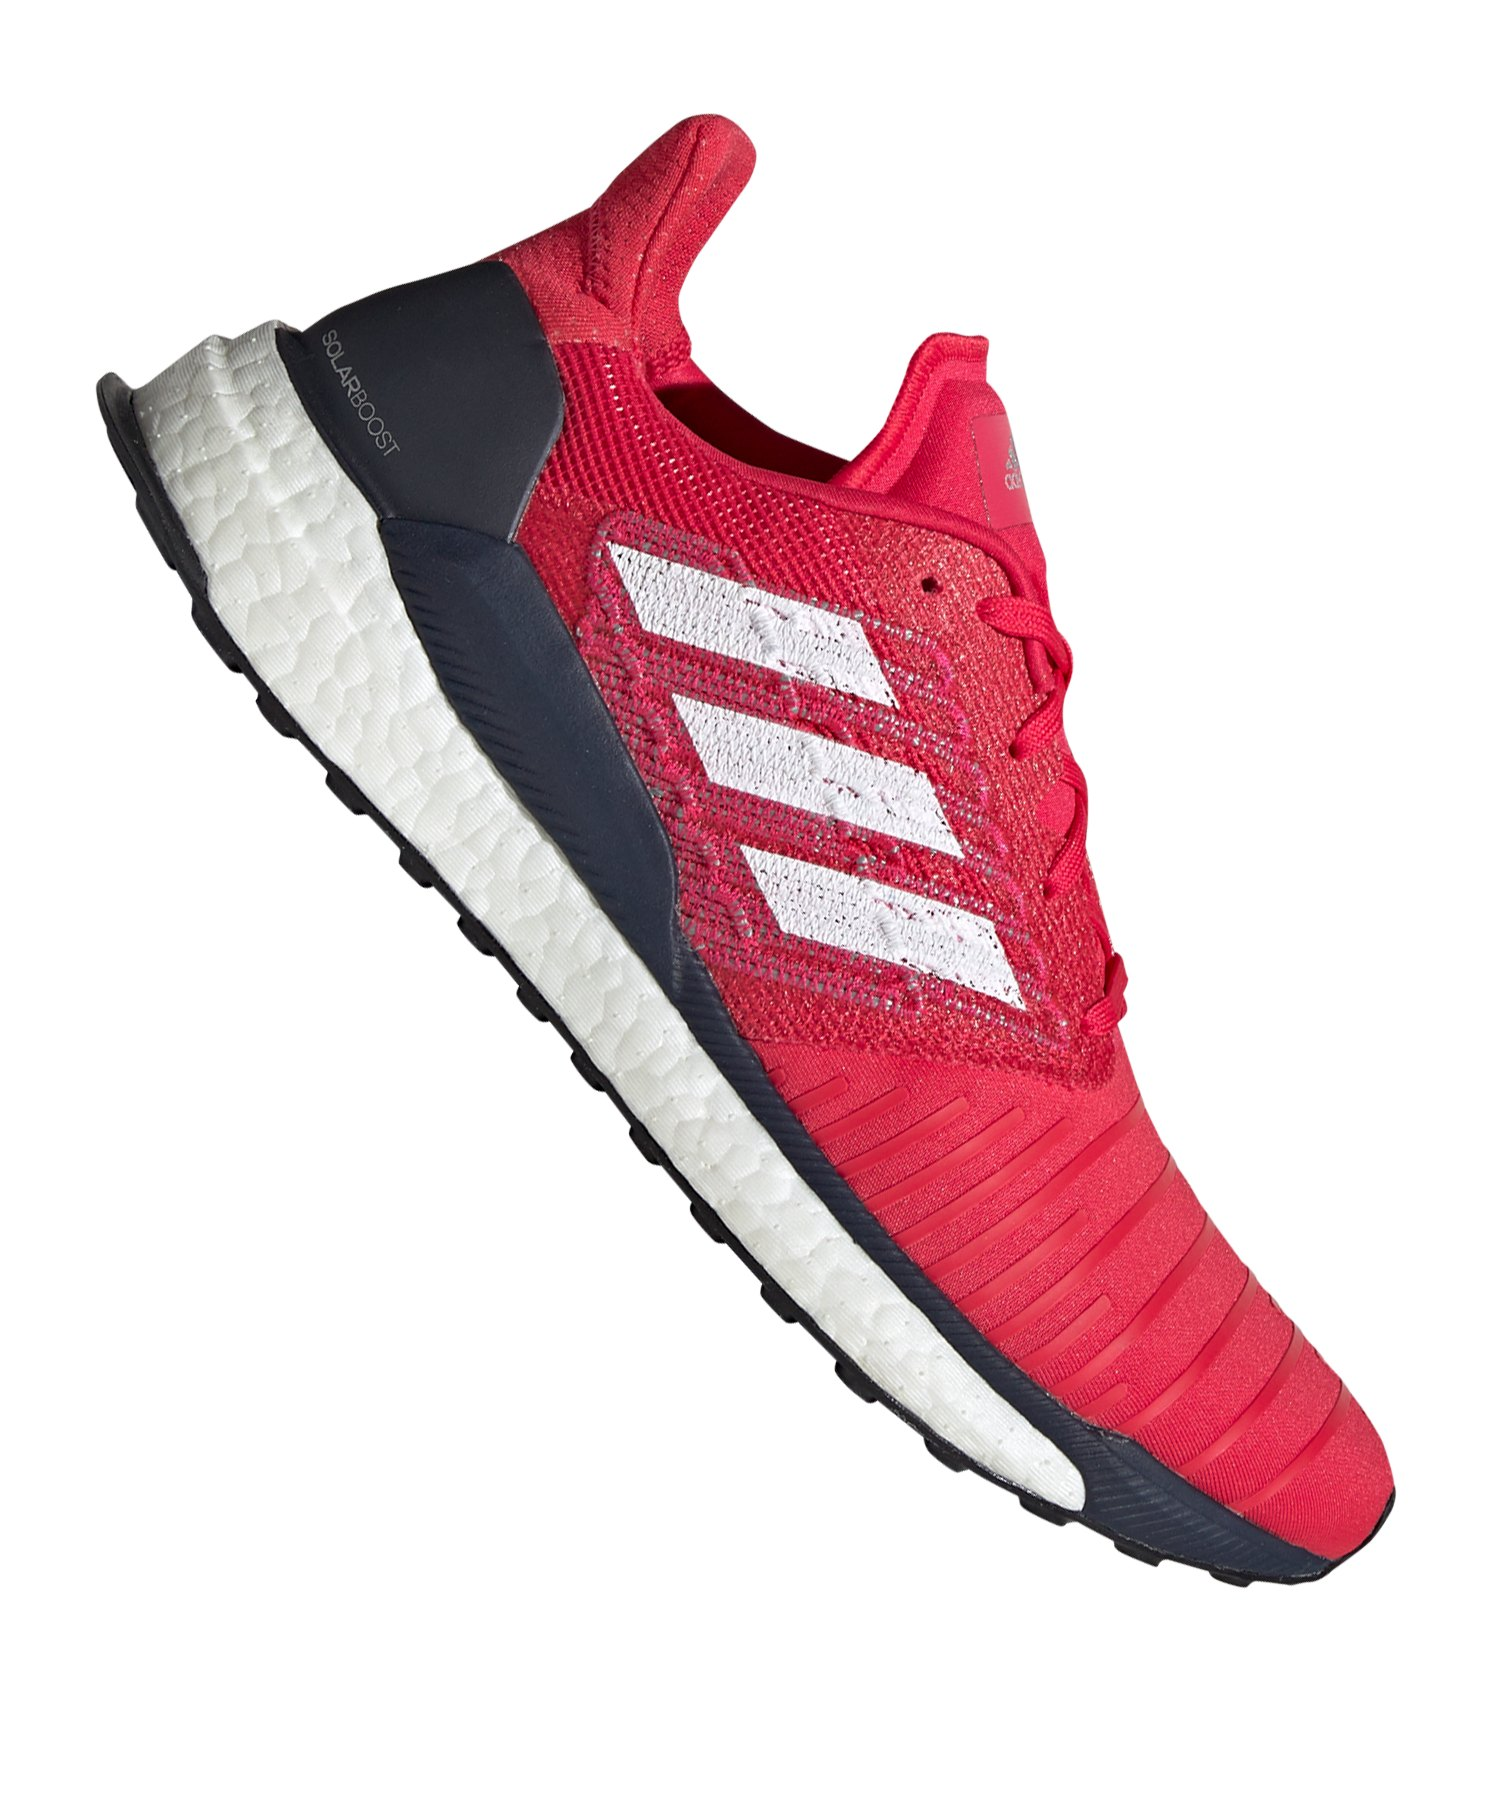 Running Pink Adidas Solar Boost Weiss mNnw8OPy0v